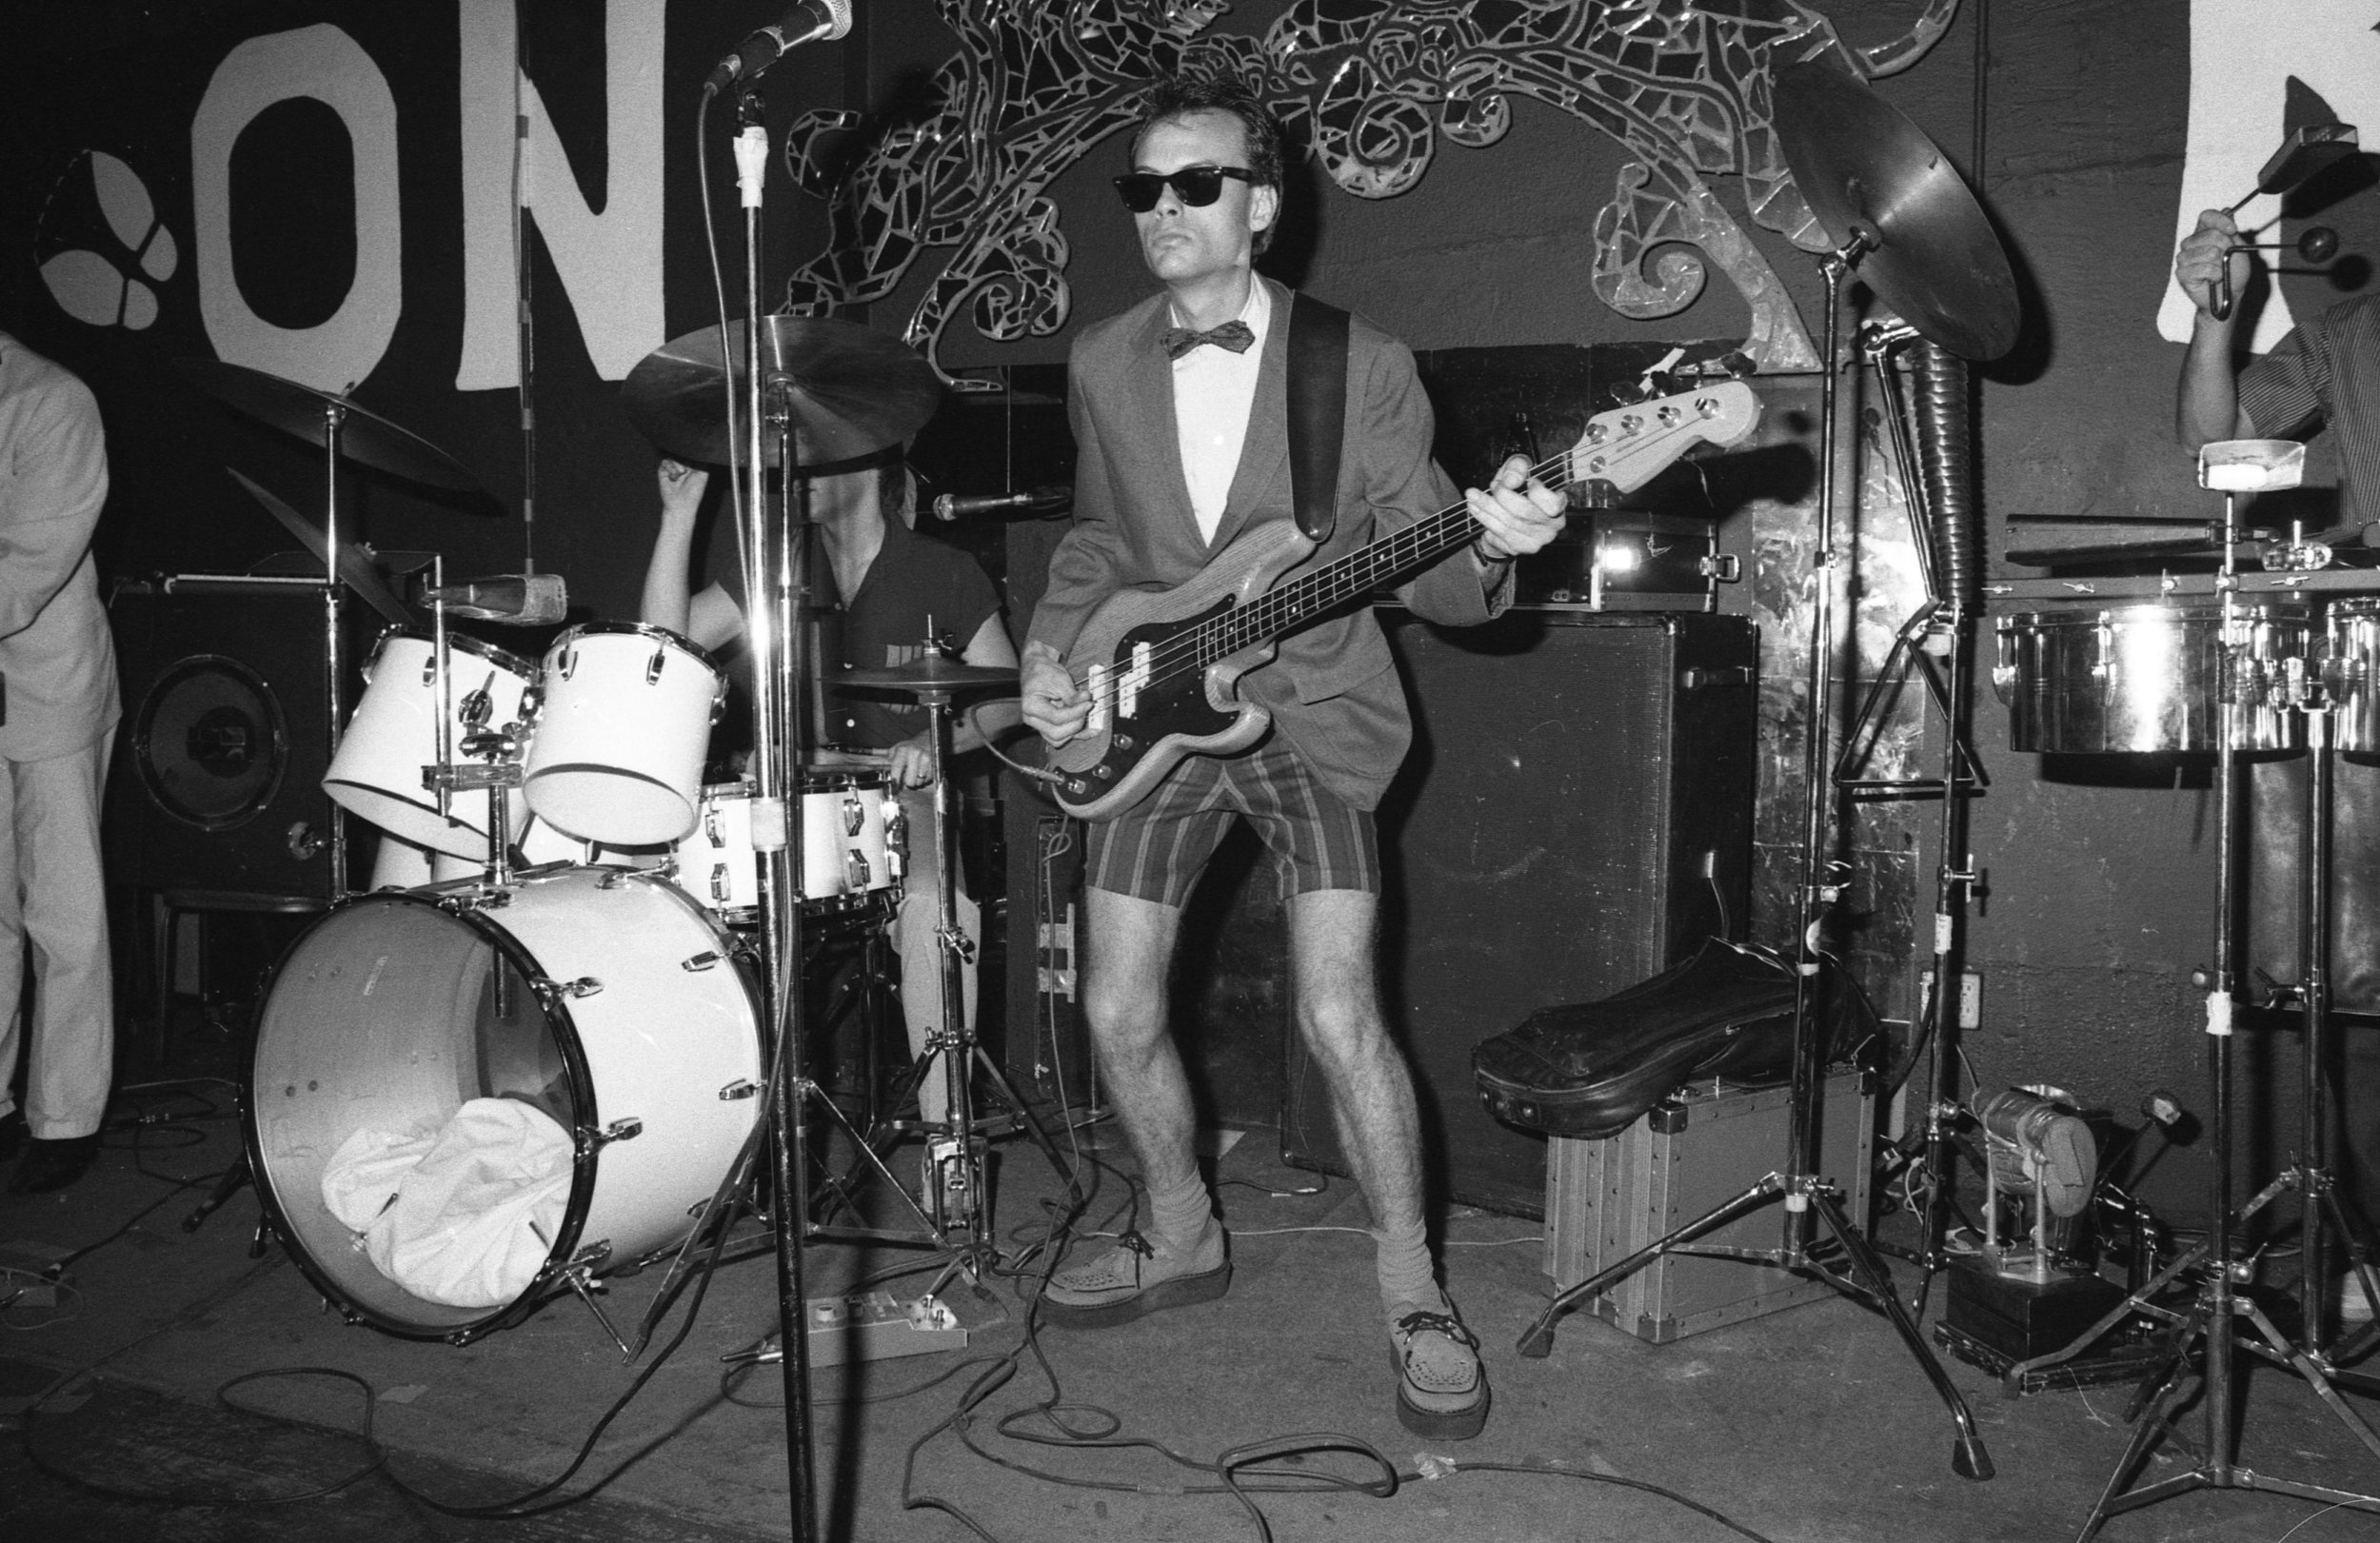 Billy Sheets and Undercover at the On Klub, Los Angeles, about 1981.